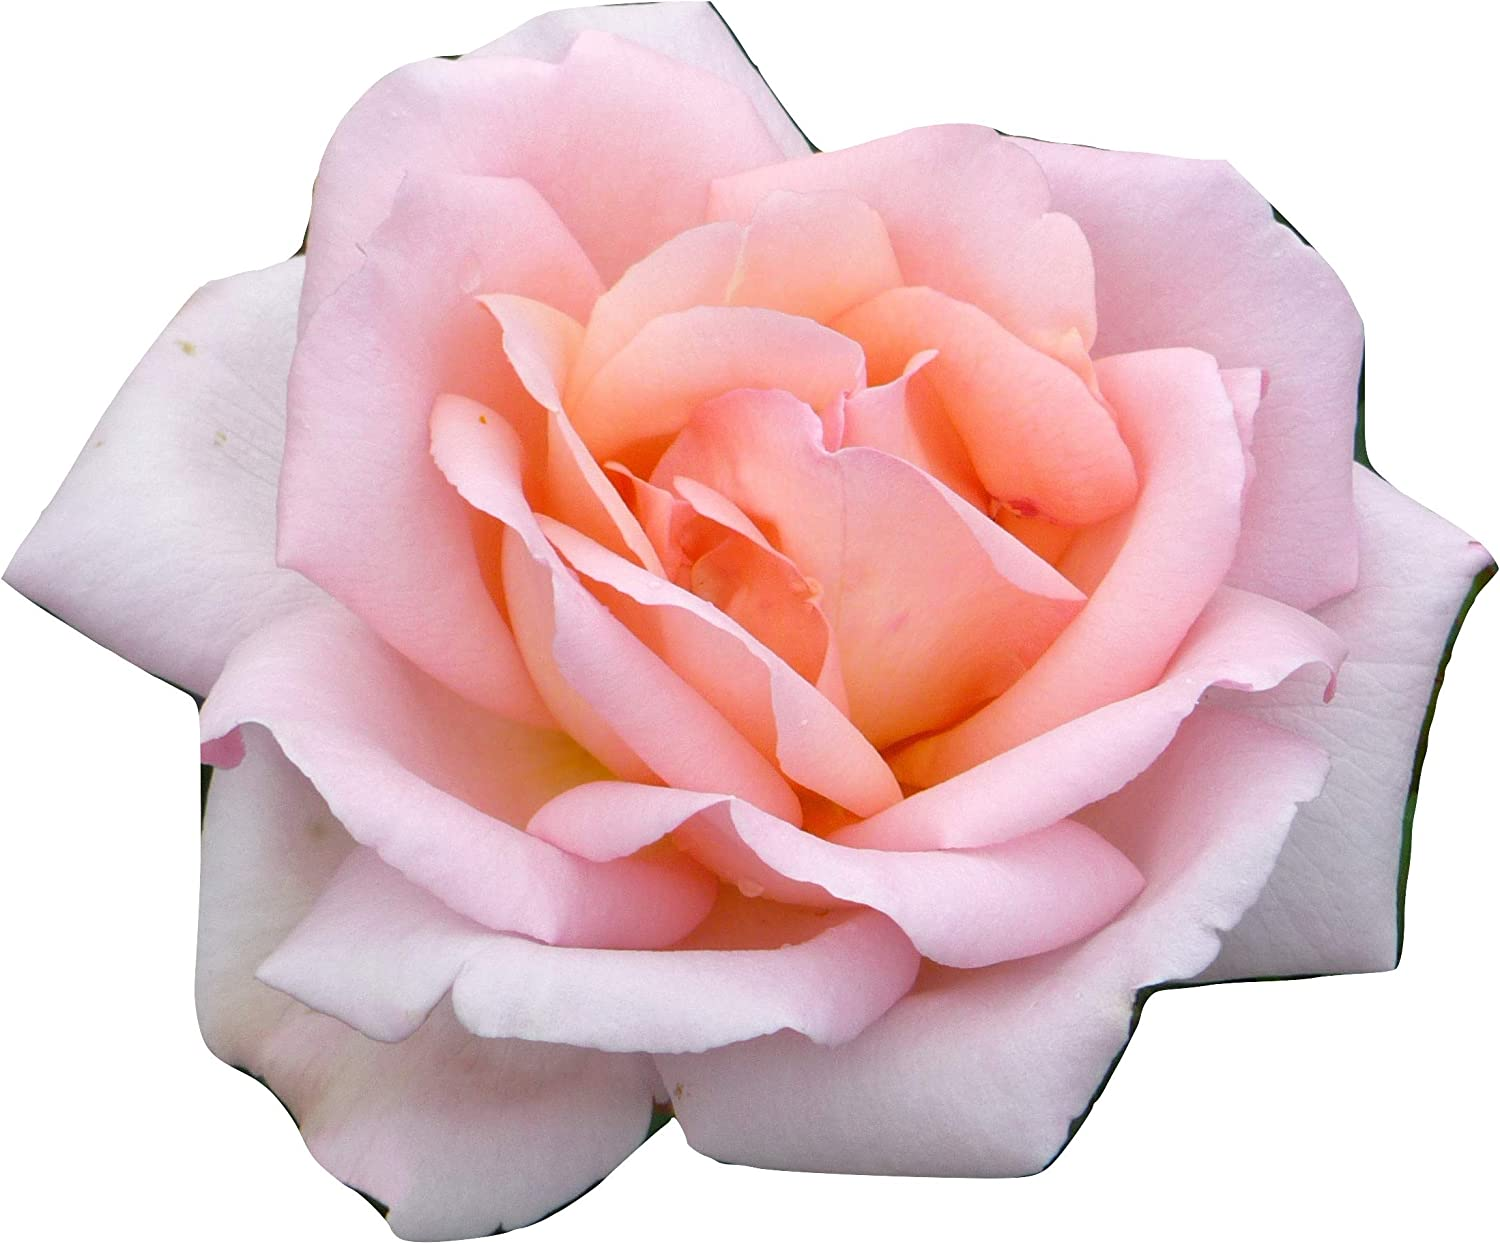 ROSE SPECIAL FRIEND Superb Birthday Plant /& Flower For Birthdays /& All Occasions